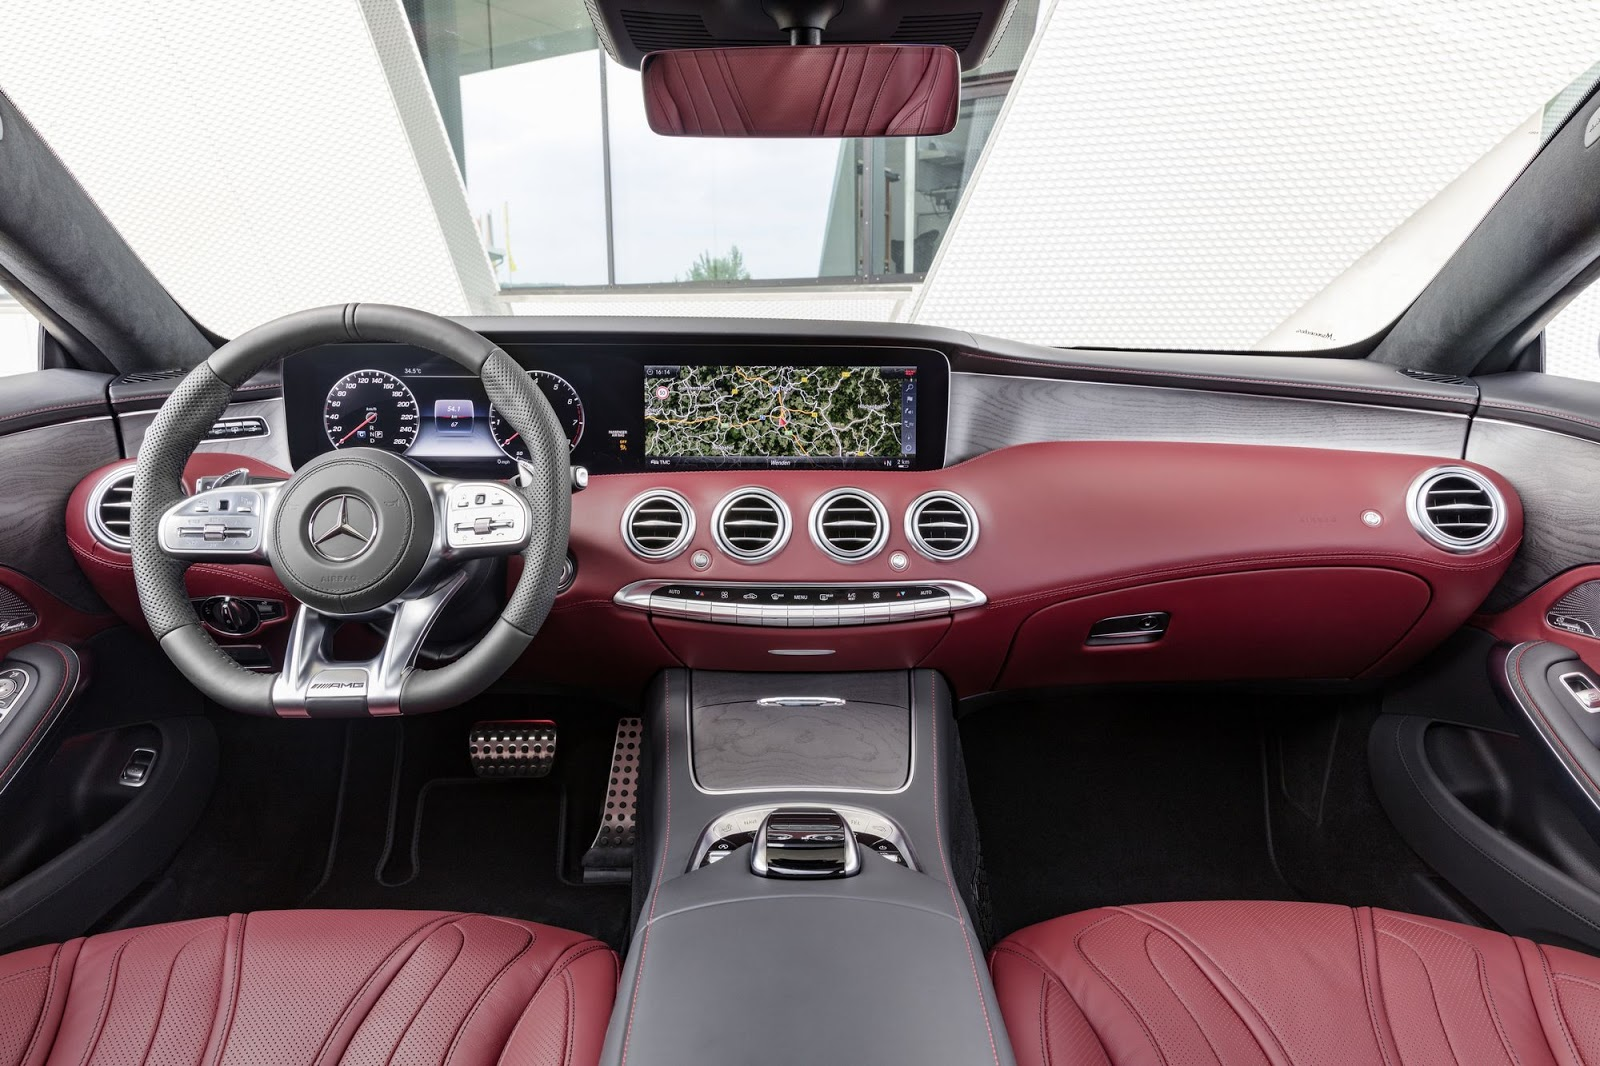 Mercedes-Benz S-Klasse Coupé; C 217; Interieur: designo Leder bengalrot/schwarz; Zierteile: Holz Esche grau seidenmatt 